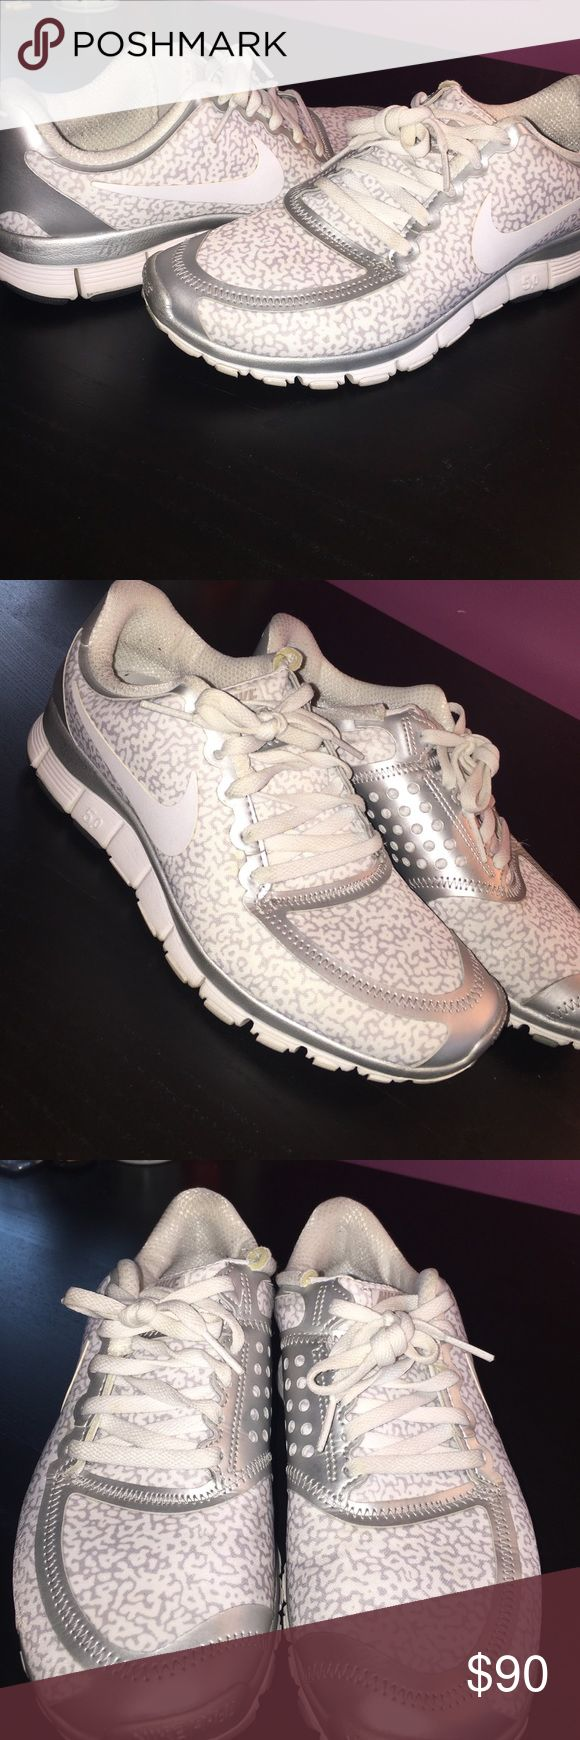 Nike Free 5.0 white & silver leopard  - Size 9 Size 9. Leopard print. Nike Free 5.0 sneaker. Only worn a few times. Light signs of use. See pictures! Awesome condition!!! Nike Shoes Athletic Shoes